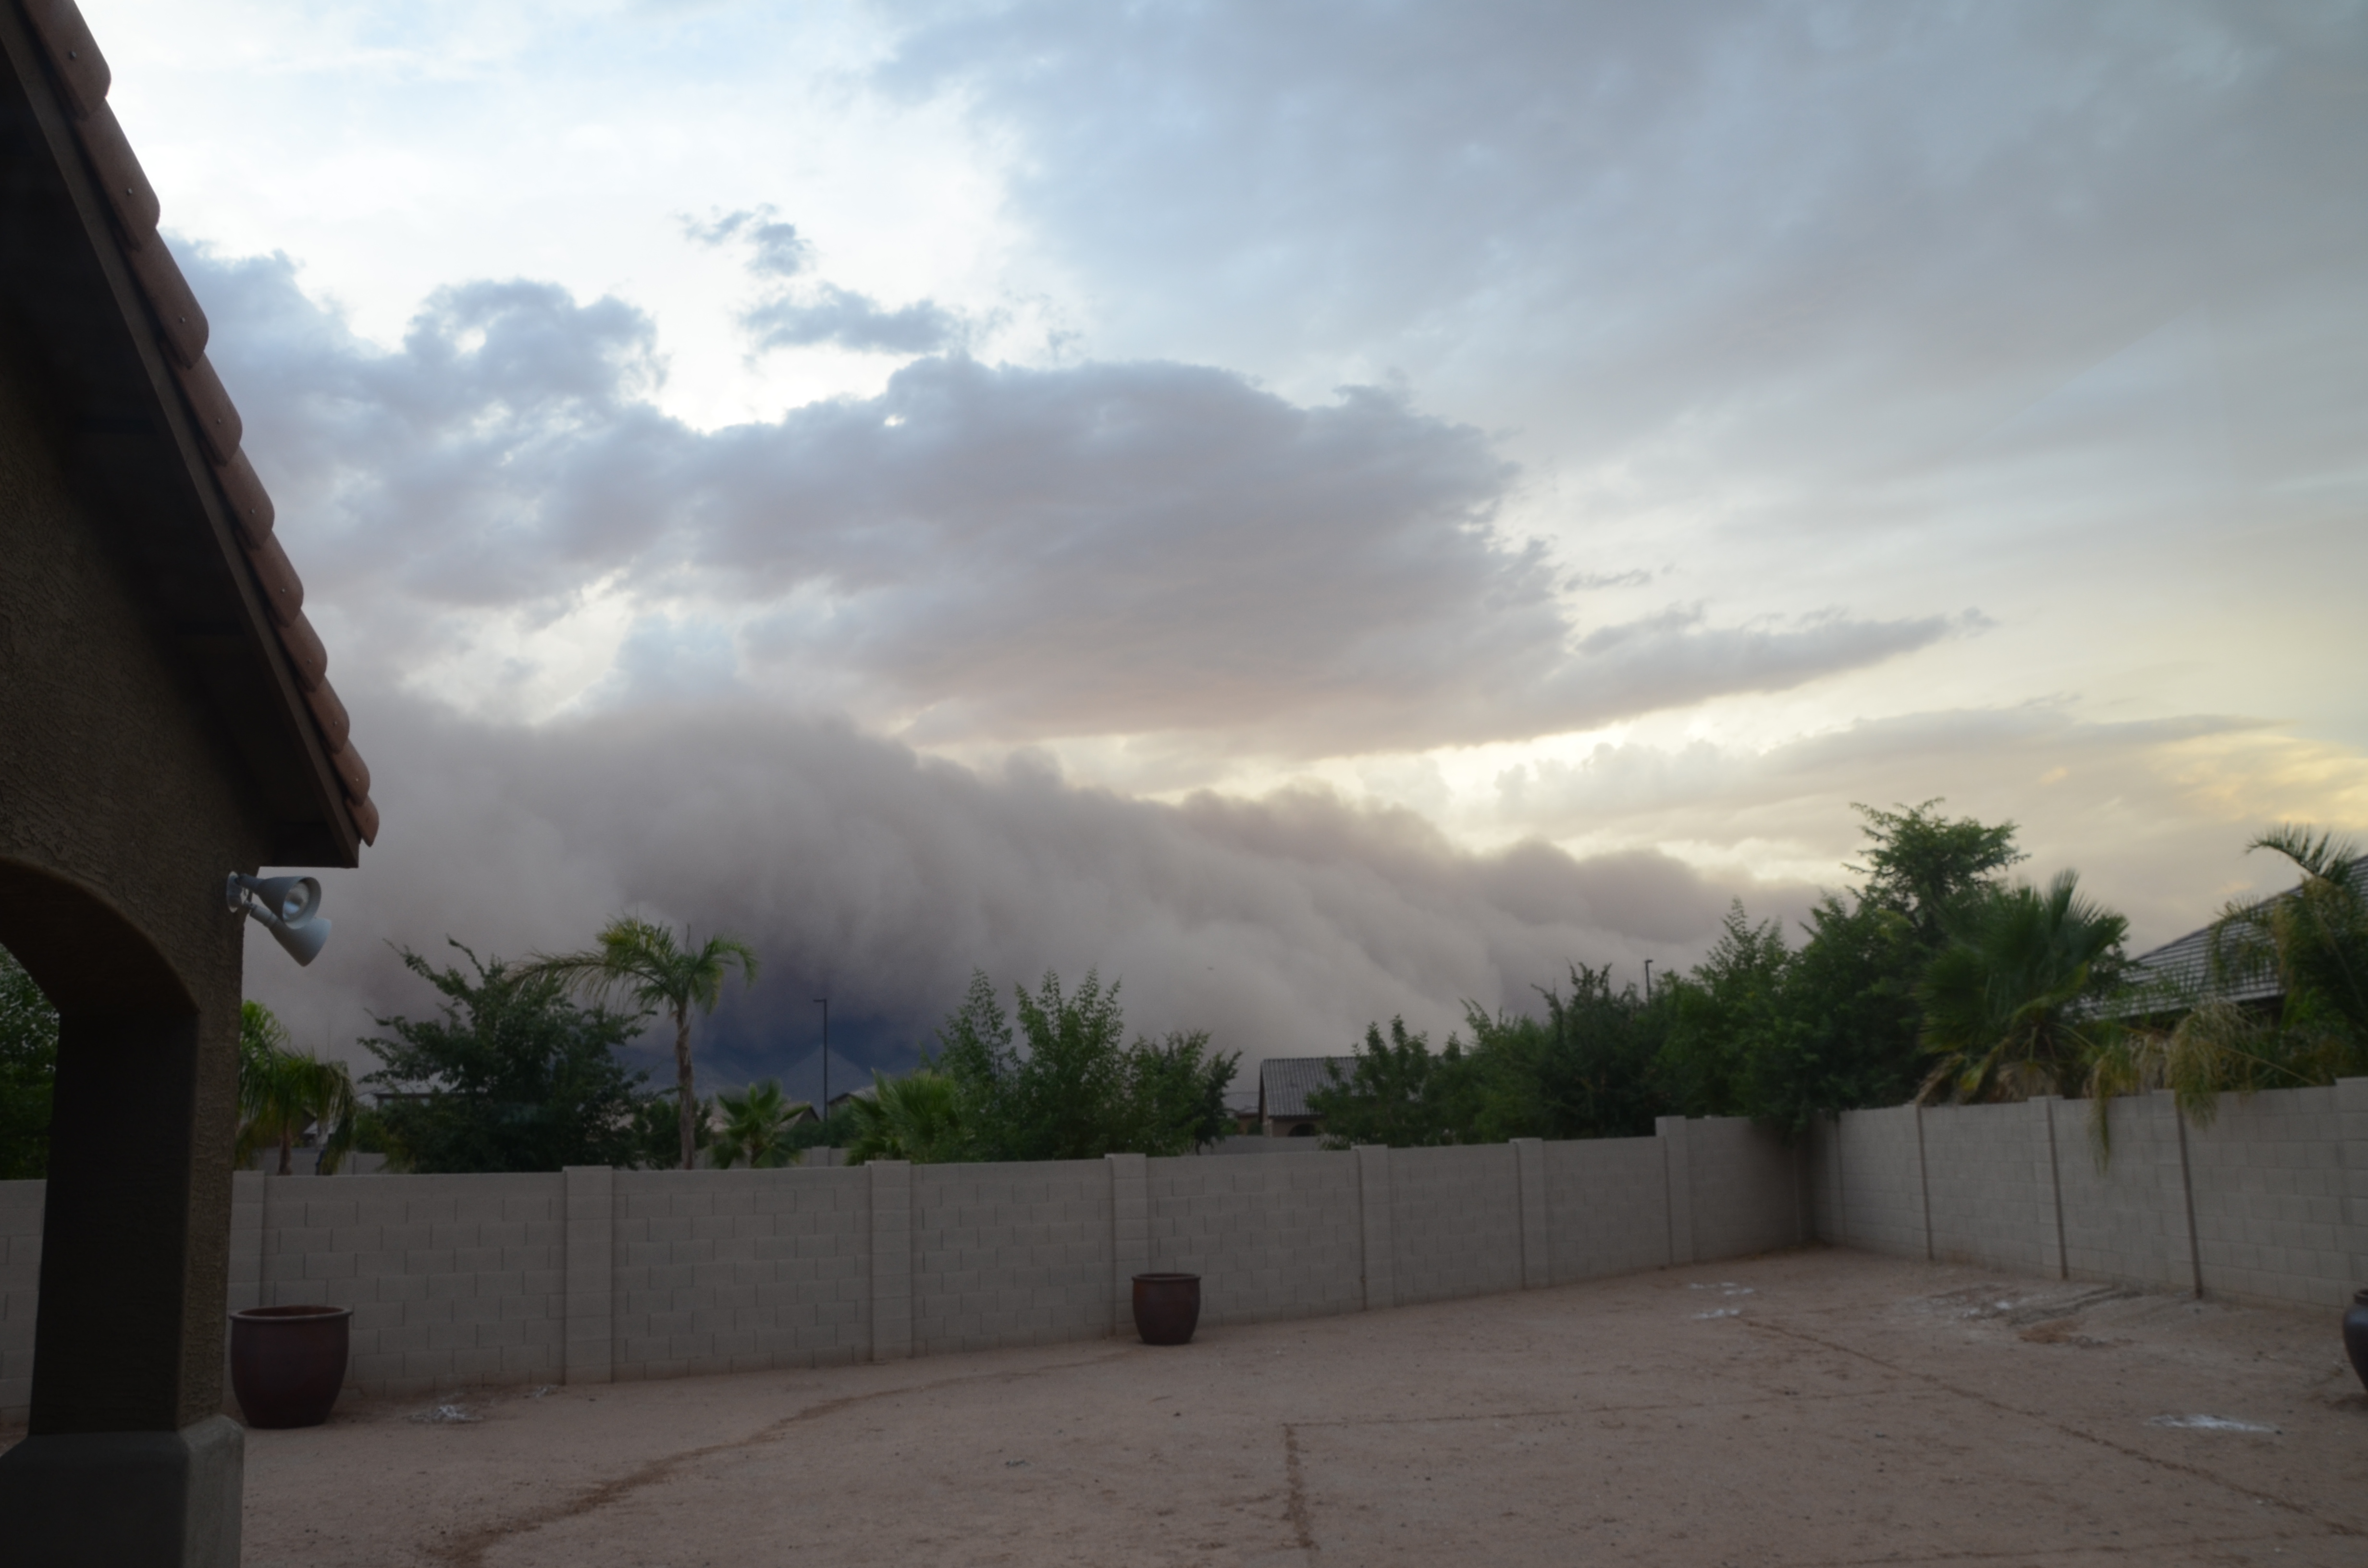 A haboob, or dust storm, barrels across the desert near Gilbert, Arizona, in July 2011. Valley fever is caused by the inhalation of fungal spores when soil is disturbed. About 60 percent of U.S. cases of occur in Arizona.